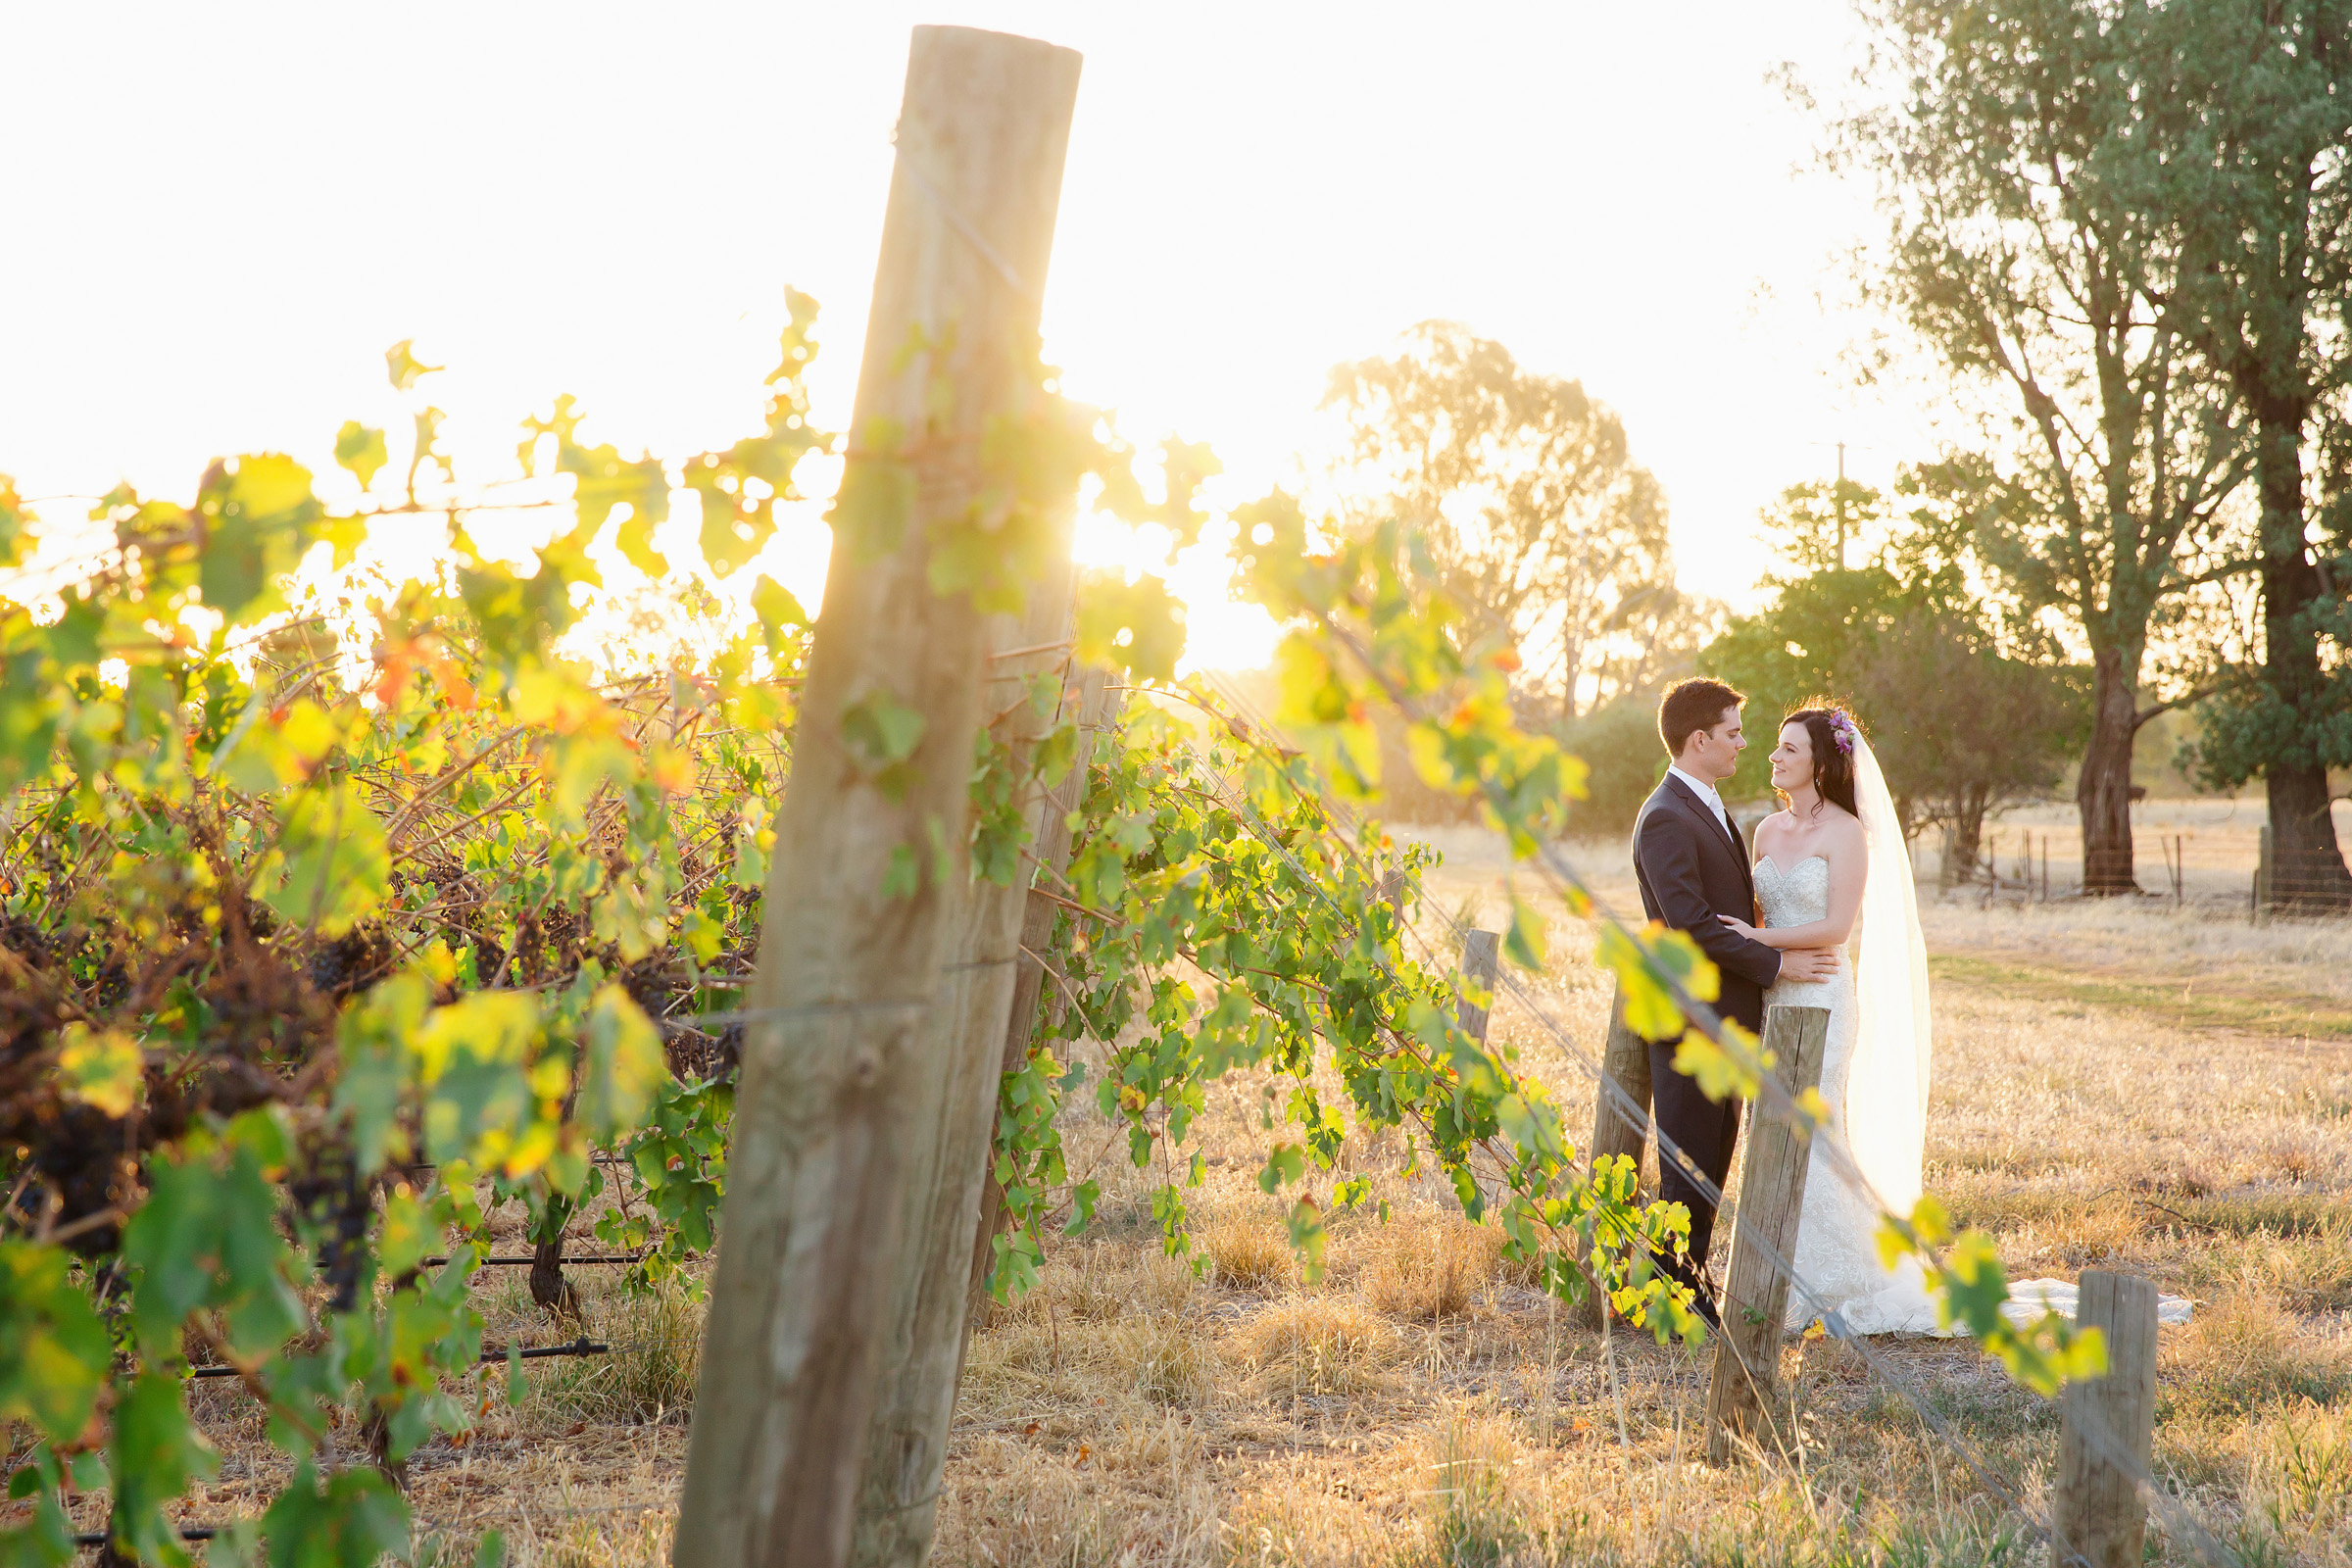 Romantic moment in the vineyard